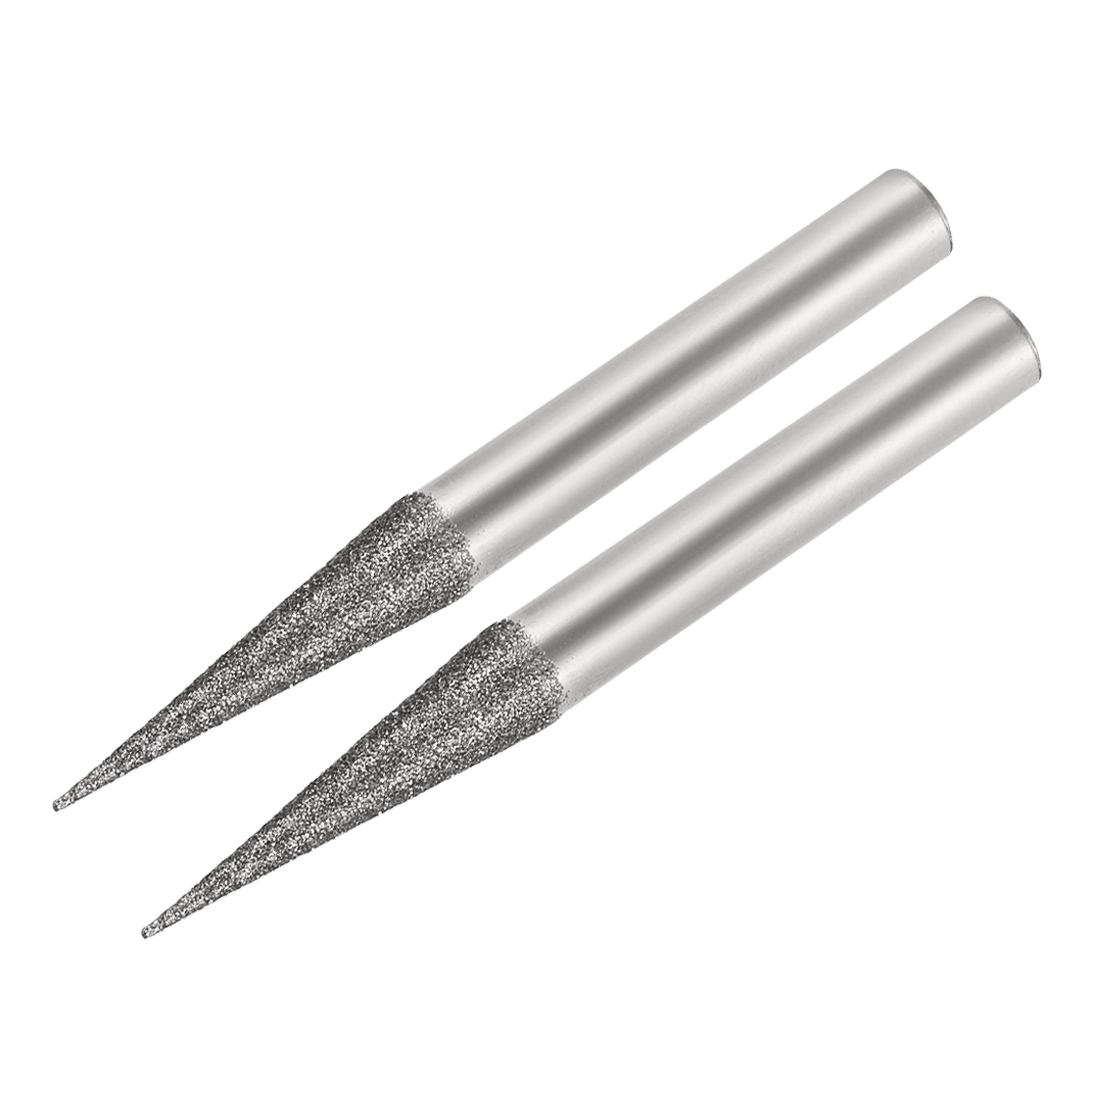 Diamond Burrs for Carving Rotary Tool 1/4-Inch Shank 6mm Pointed 150 Grit 2 Pcs